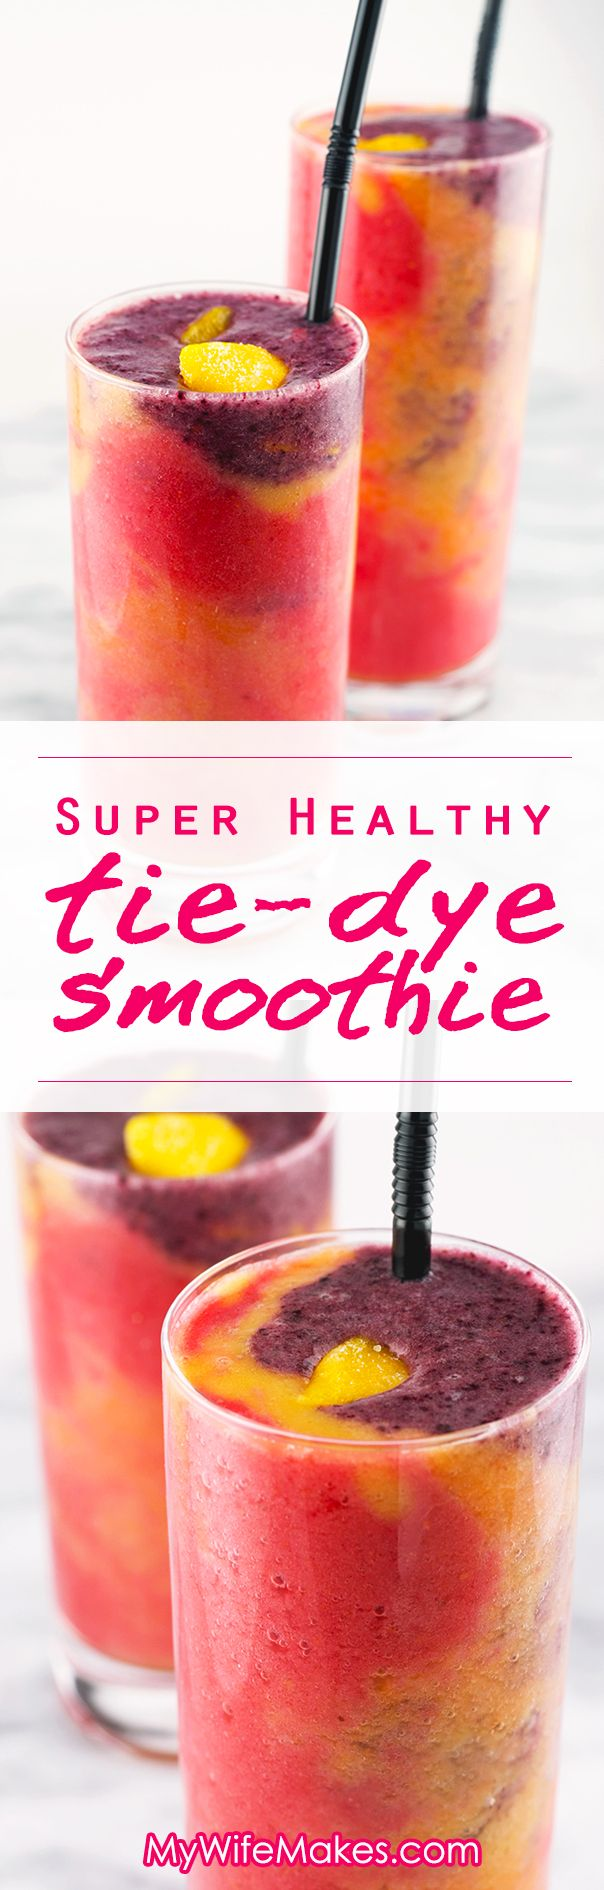 Super Healthy 'Tie Dye' Fruit Smoothie - 4 delicious coconut water based fruit Smoothies in one colorful glass! #healthy #smoothie #vegan #vegetarian #fruit #drink #recipe #tie-dye #coconut